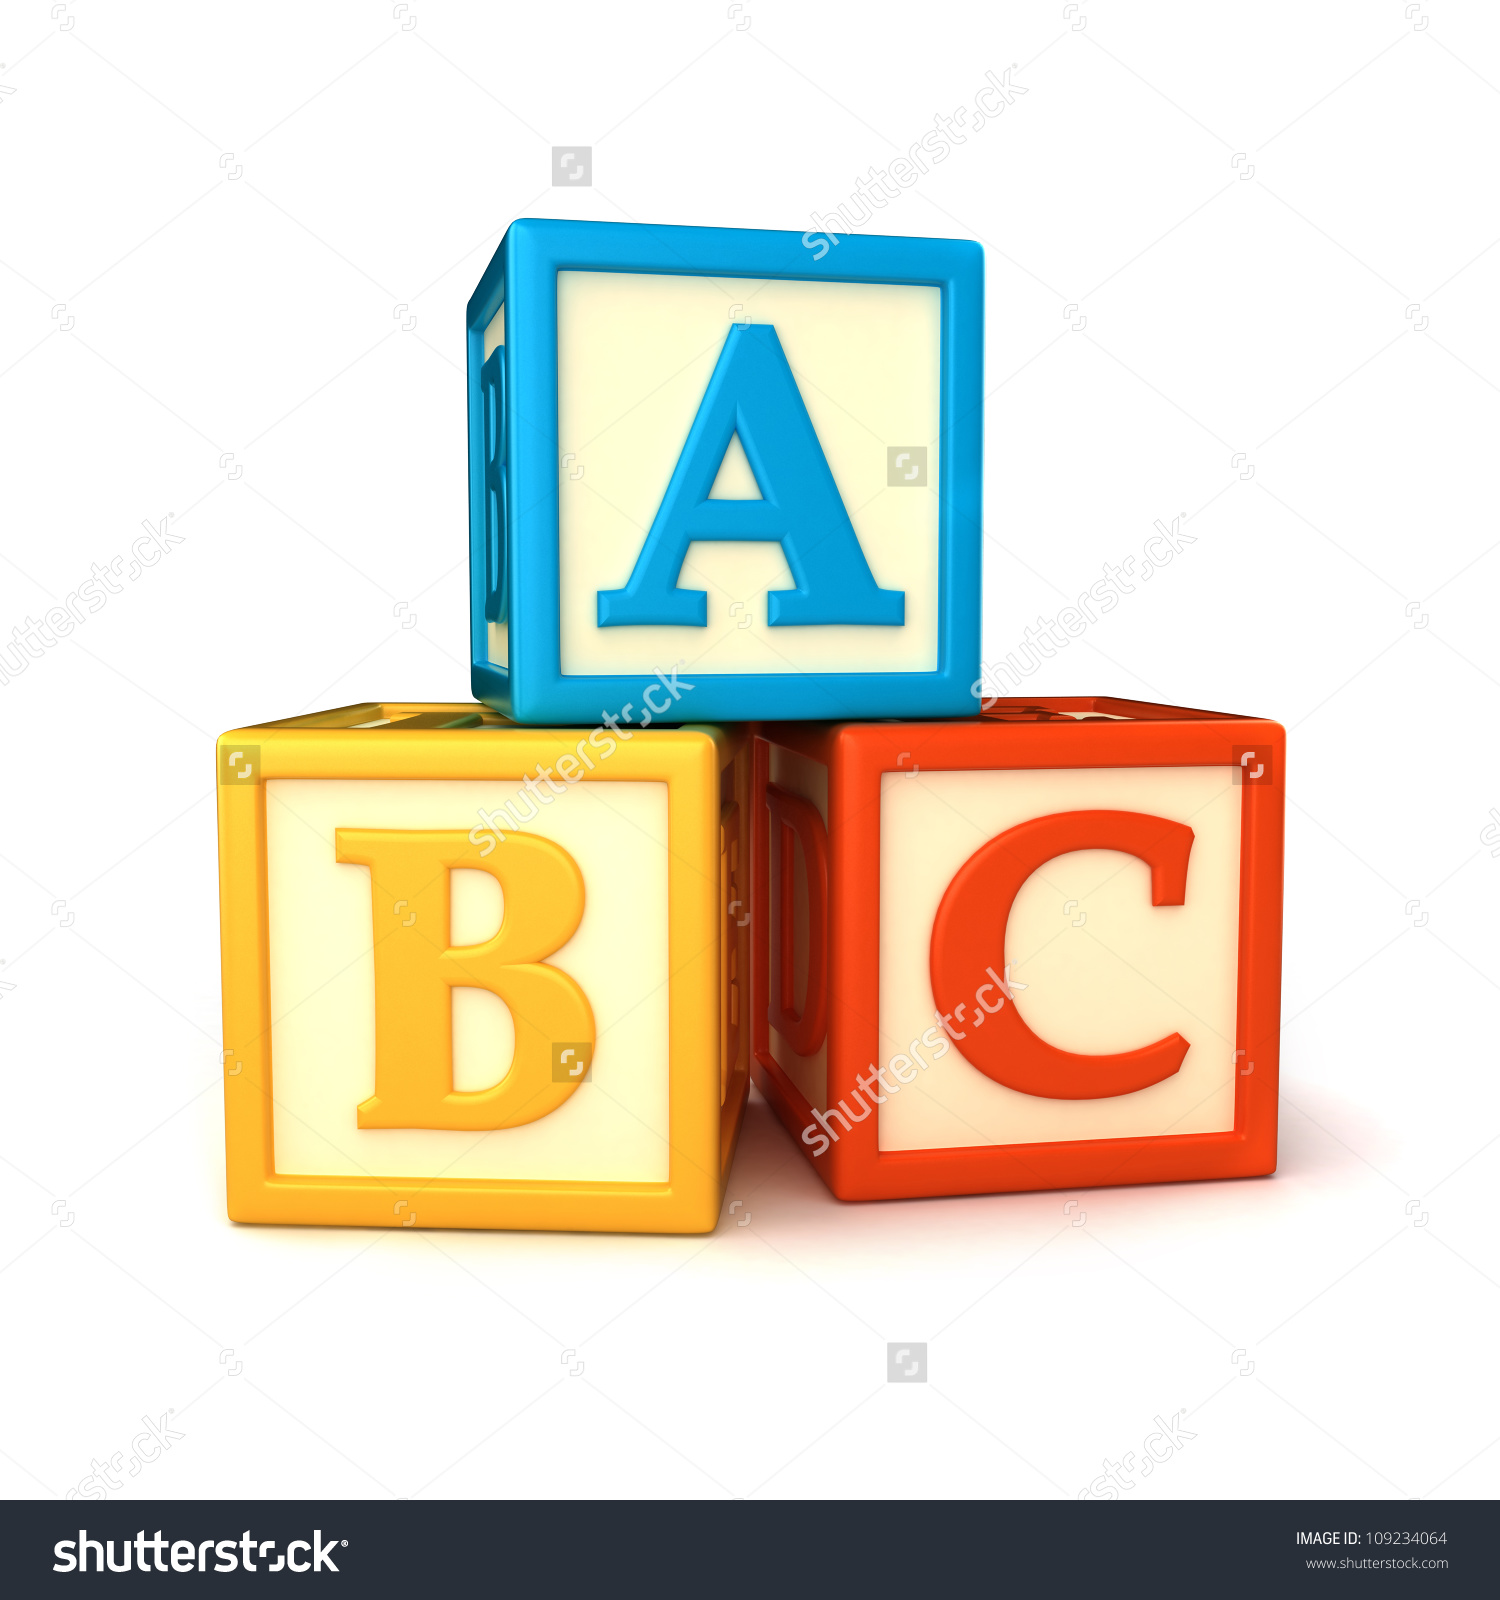 Abc building blocks clipart graphic free stock Alphabet building blocks clipart - ClipartFest graphic free stock